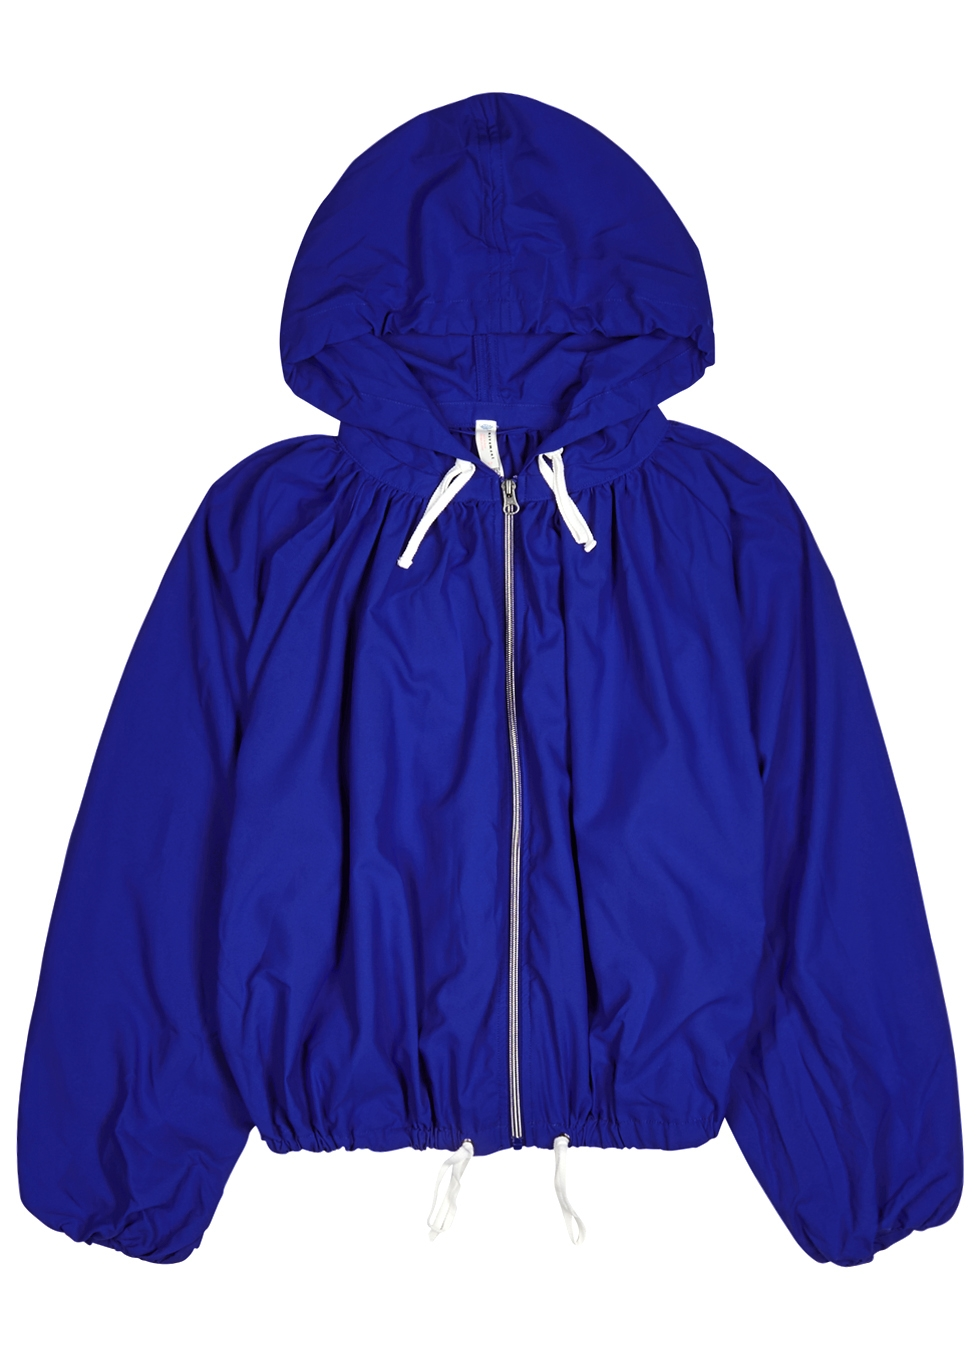 FREE PEOPLE MOVEMENT BREEZE COBALT RECYCLED-SHELL JACKET